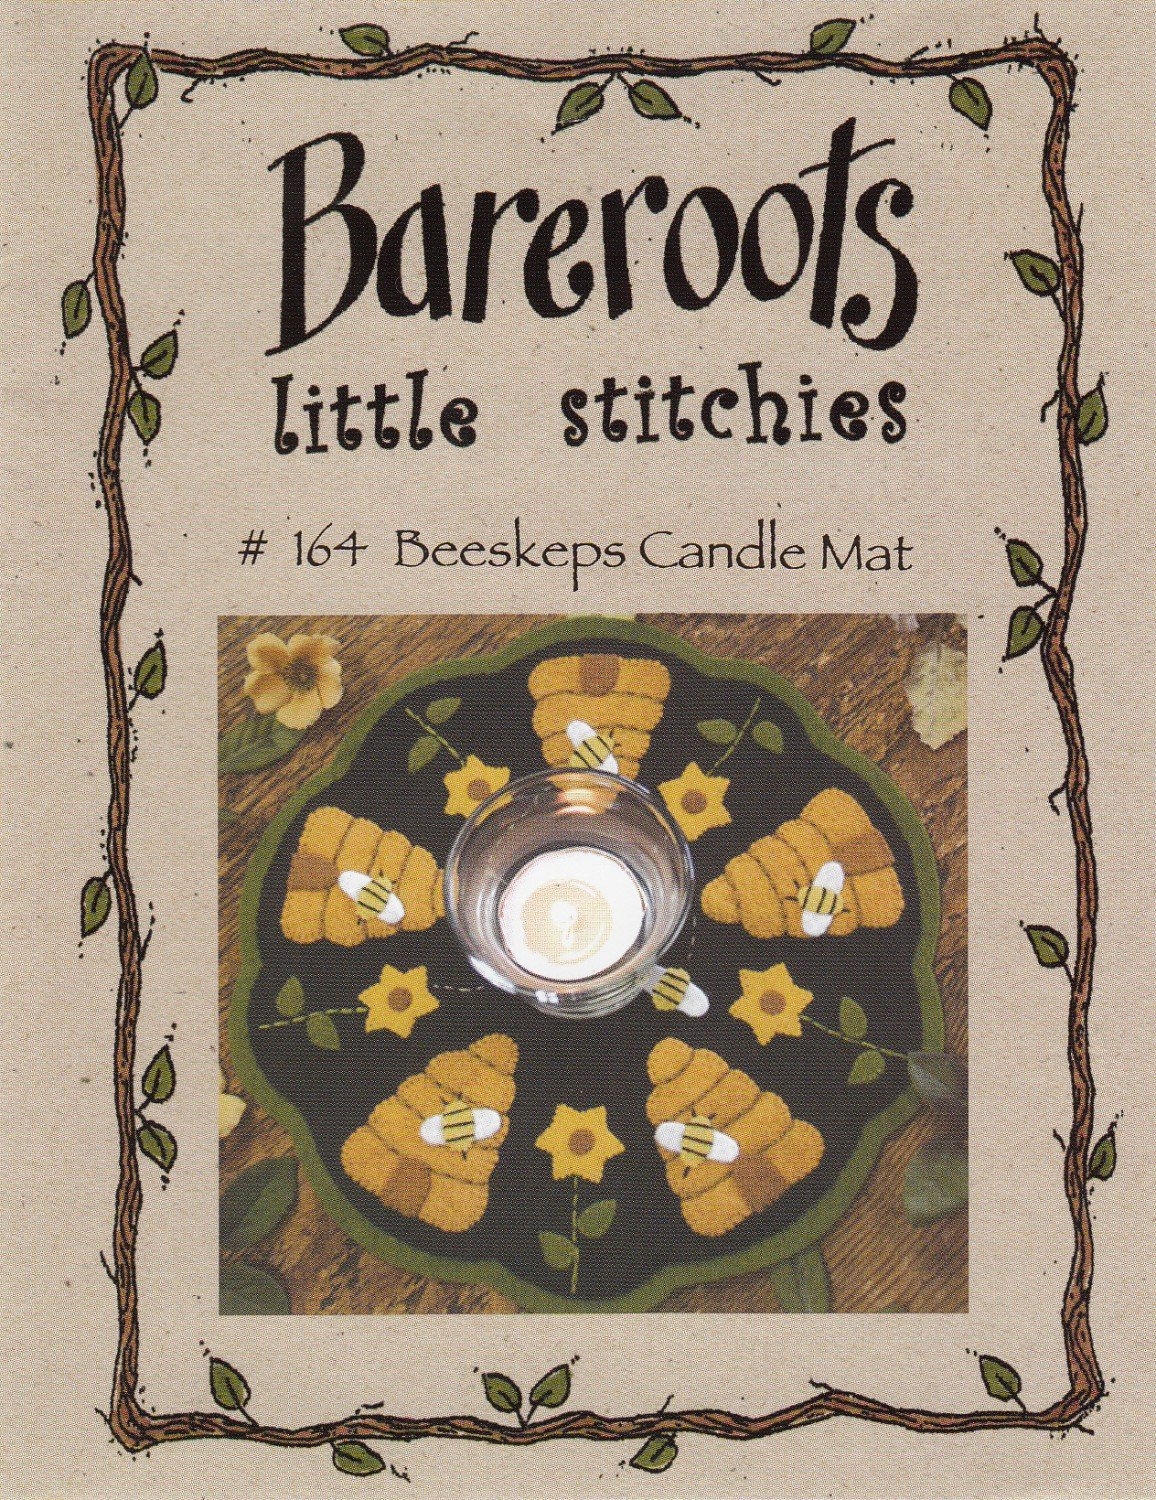 Beeskeps Candle Mat by Bareroots Little Stitchies